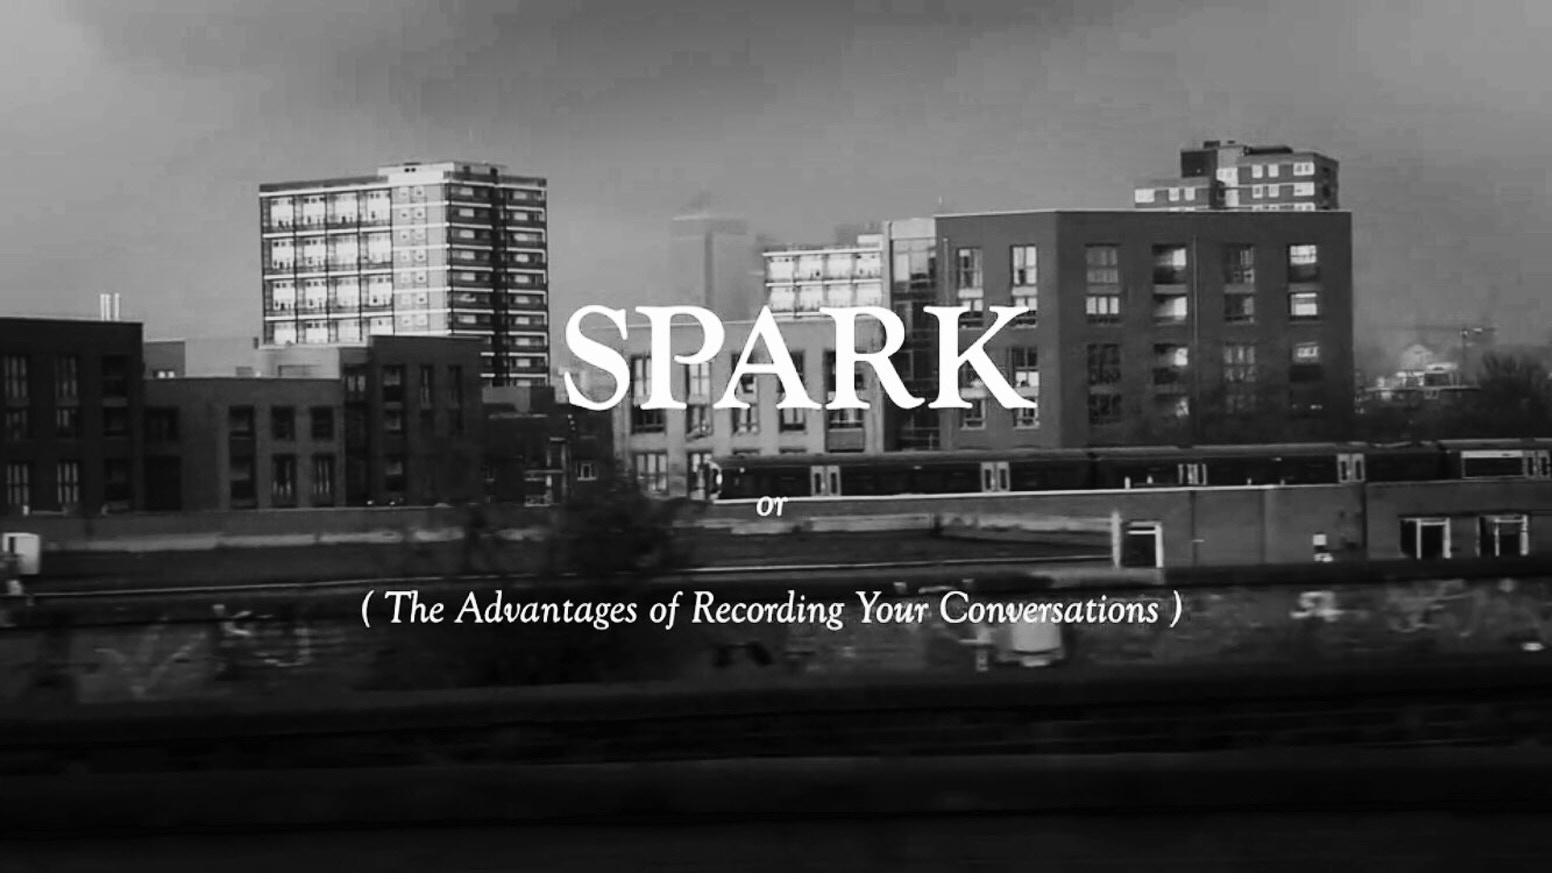 'Remember who you are, begin from there' - a short film about addiction, creativity and sisterly love...